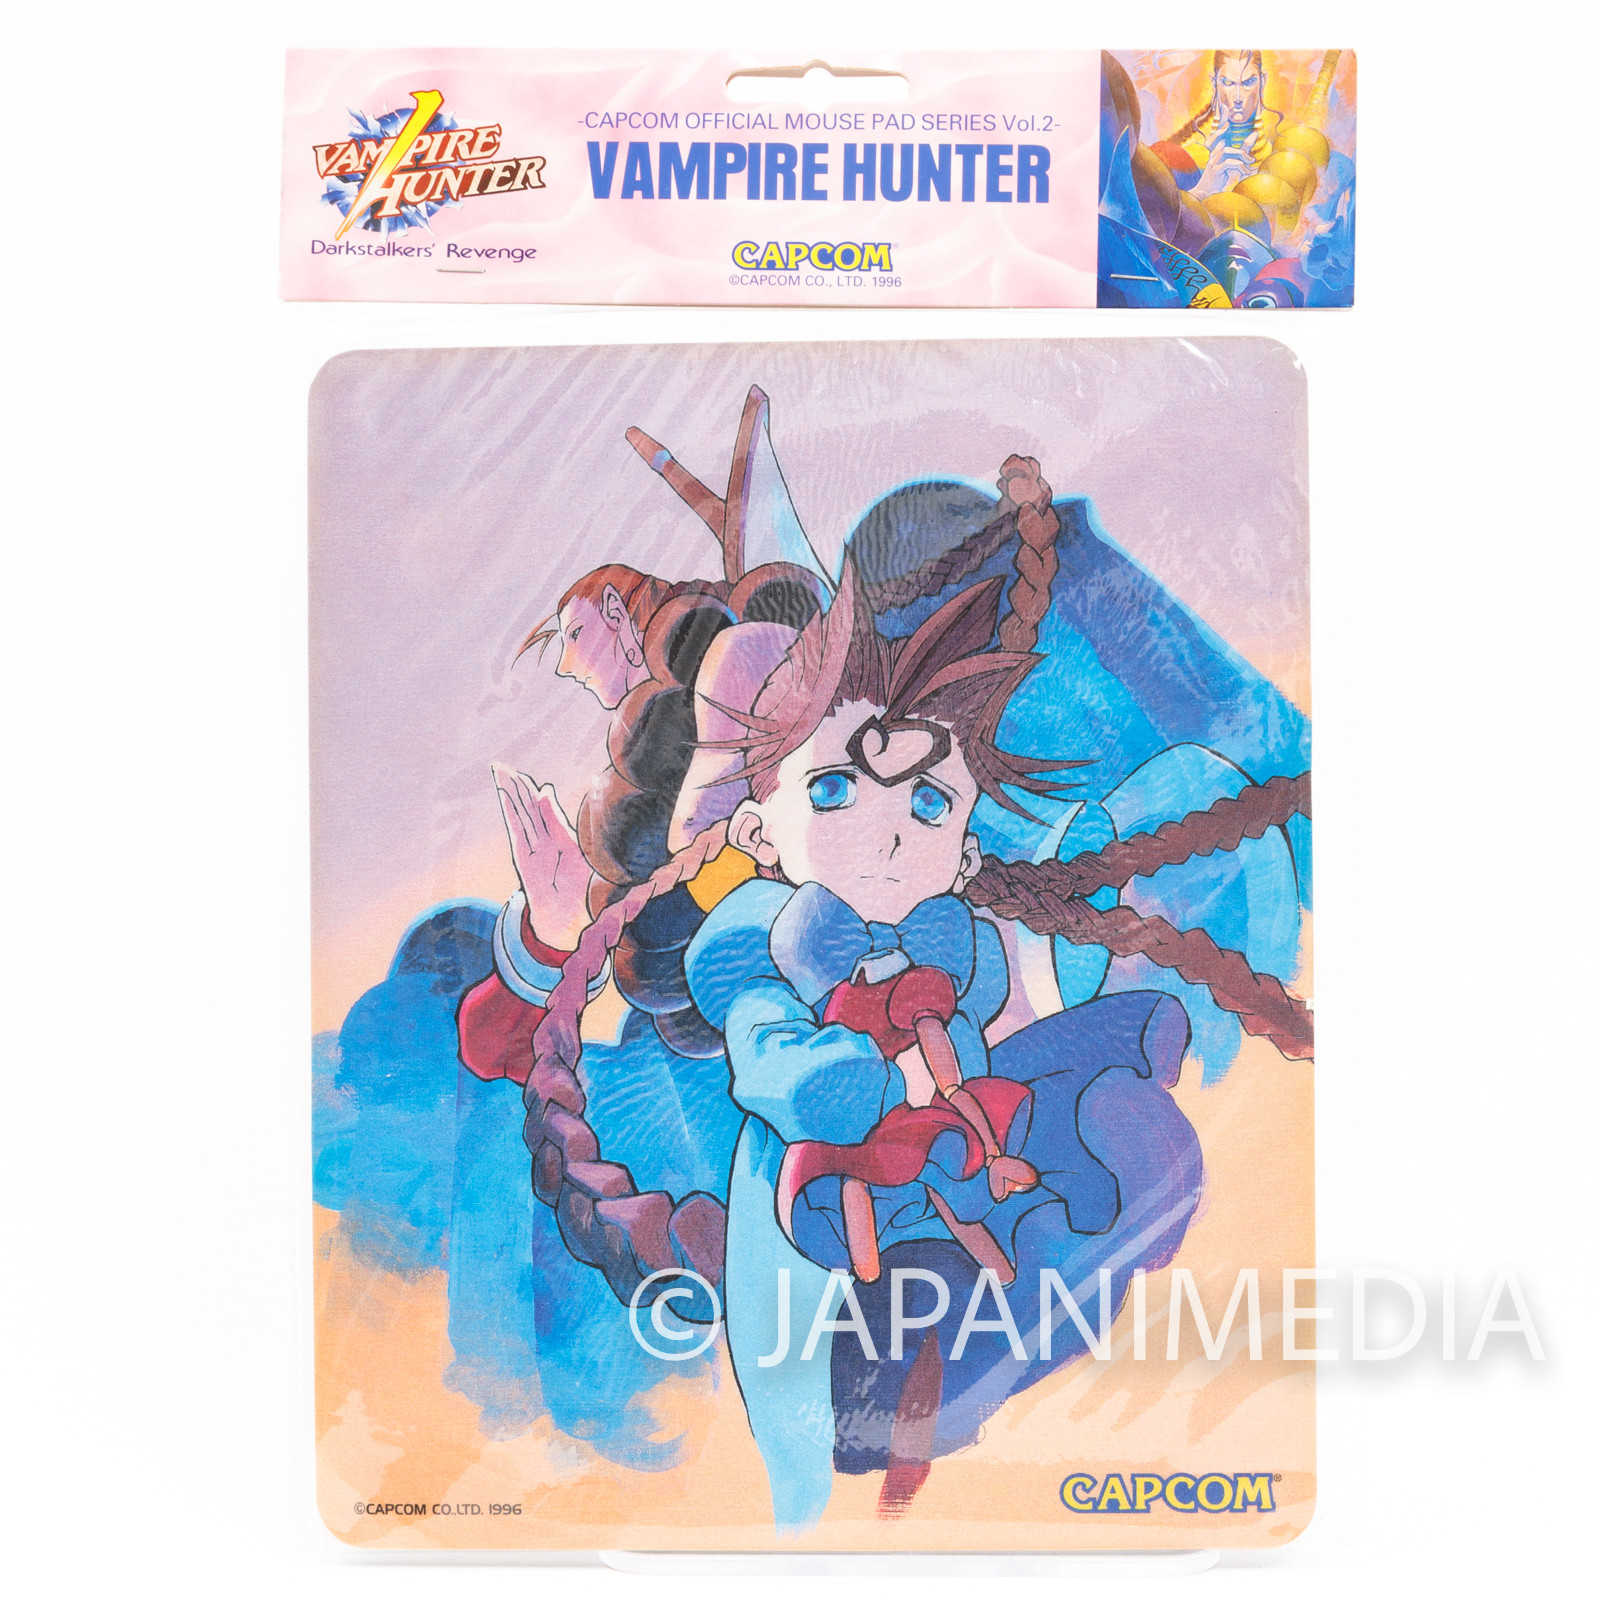 Darkstalkers (Vampire Hunter) Donovan Baine & Anita Mouse Pad Capcom JAPAN